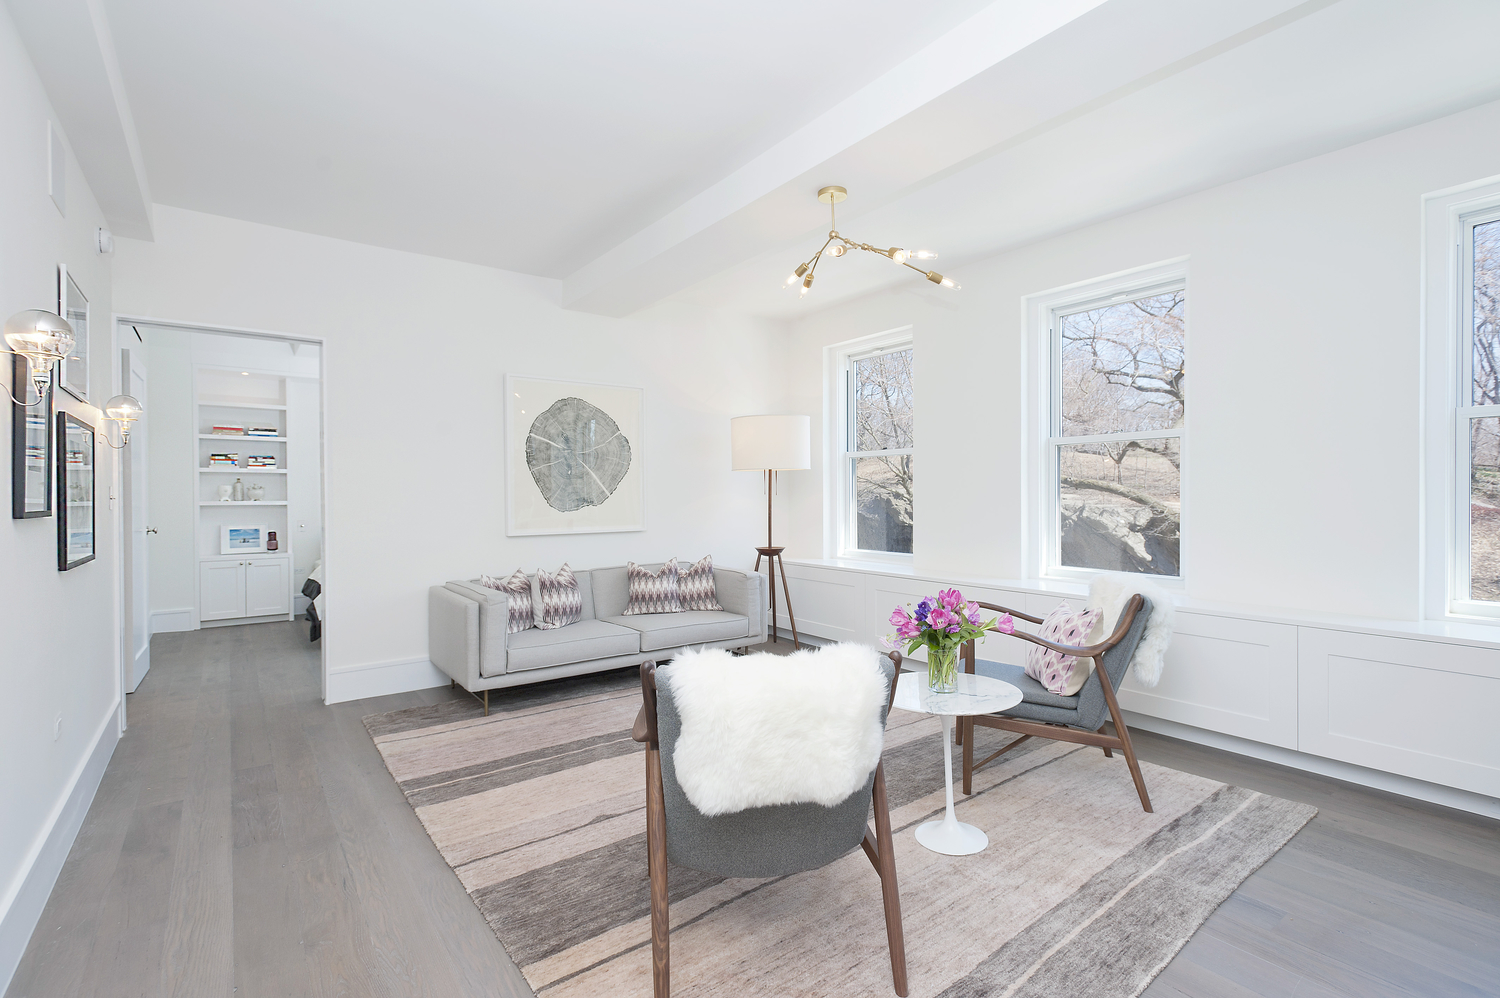 Private residence  featuring Reclaimed White Oak [New Face] Flooring, Central Park West, NYC.